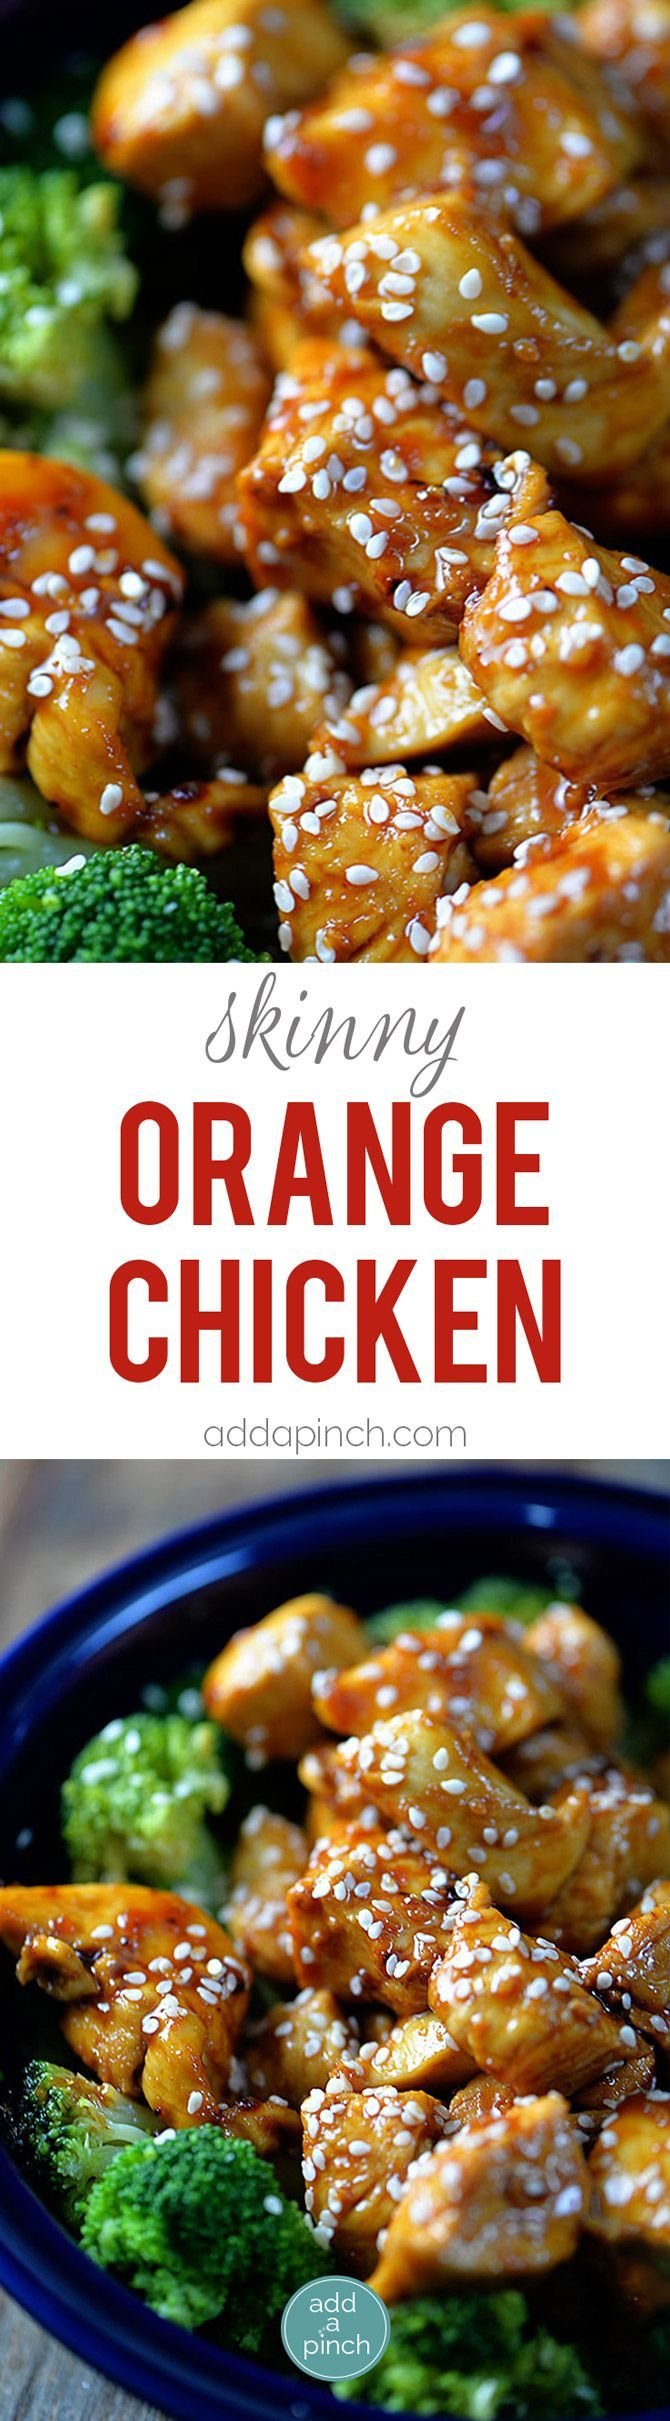 Orange Chicken Makes A Favorite Chinese Dish A Lightened Orange Chicken  Recipe Which Is Paleo